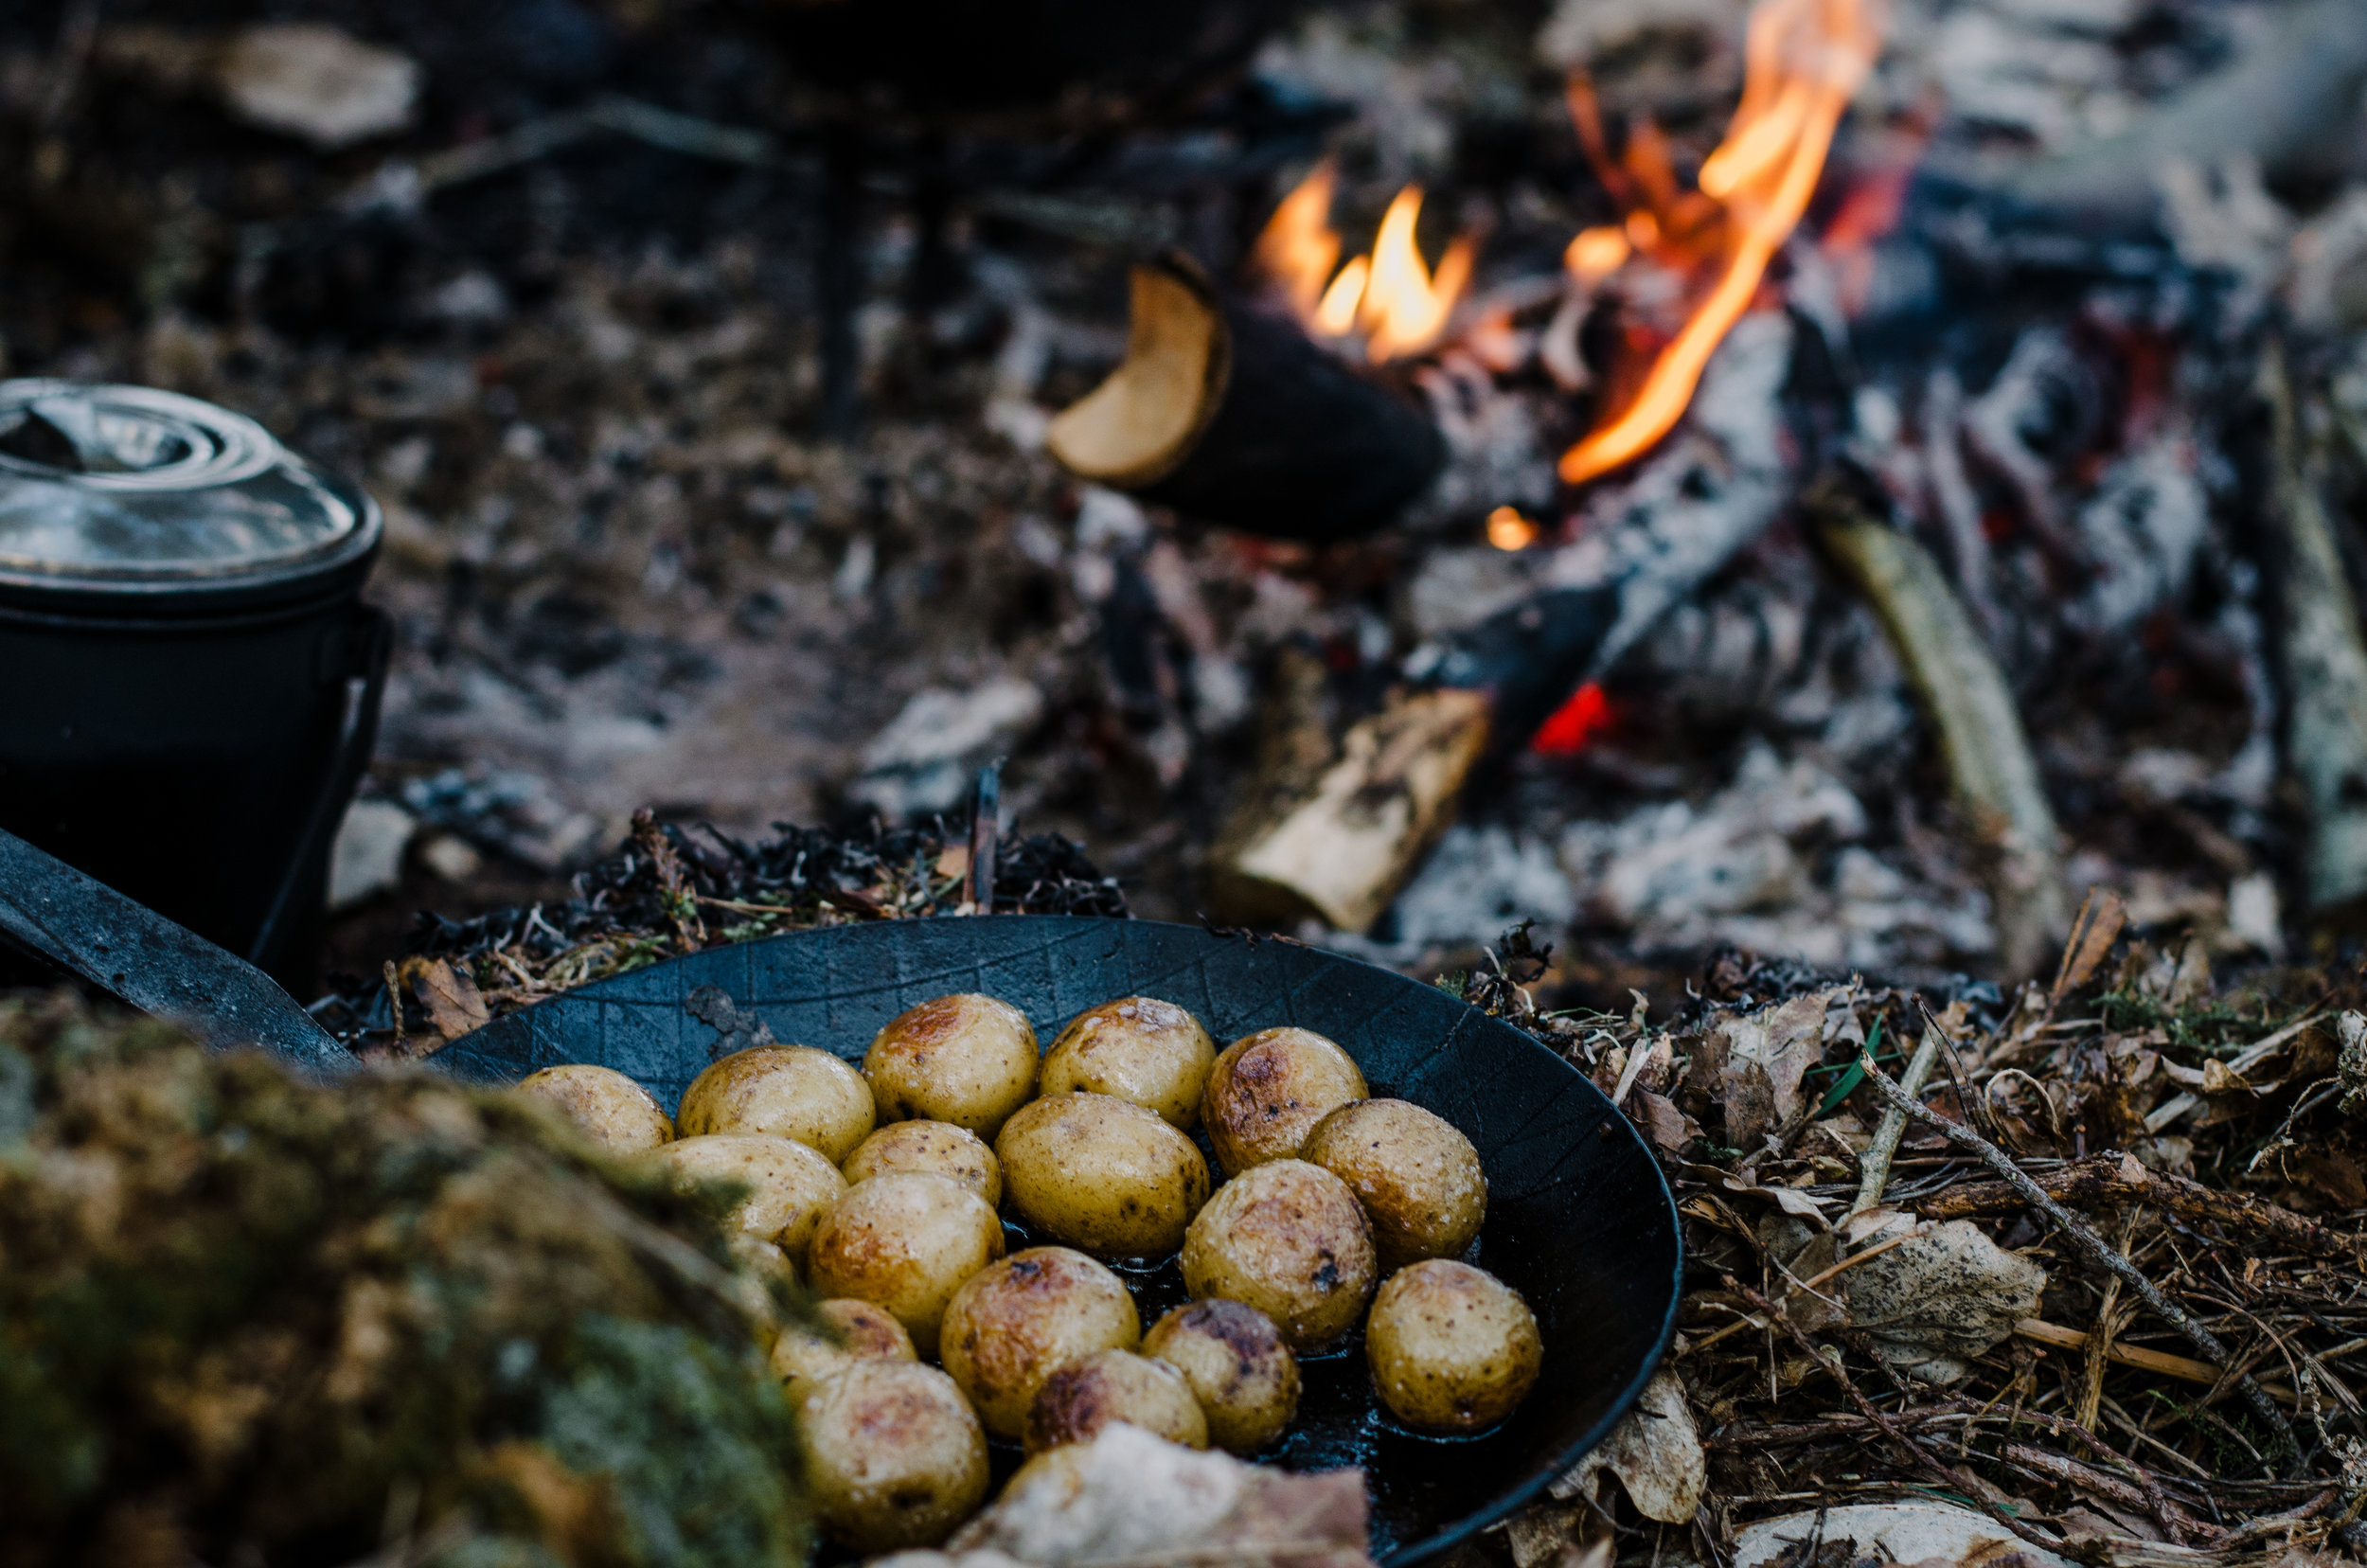 Fire & Wild- Wild Garlic & Campfire Dinner - Aiste Saulyte Photography-300.jpg